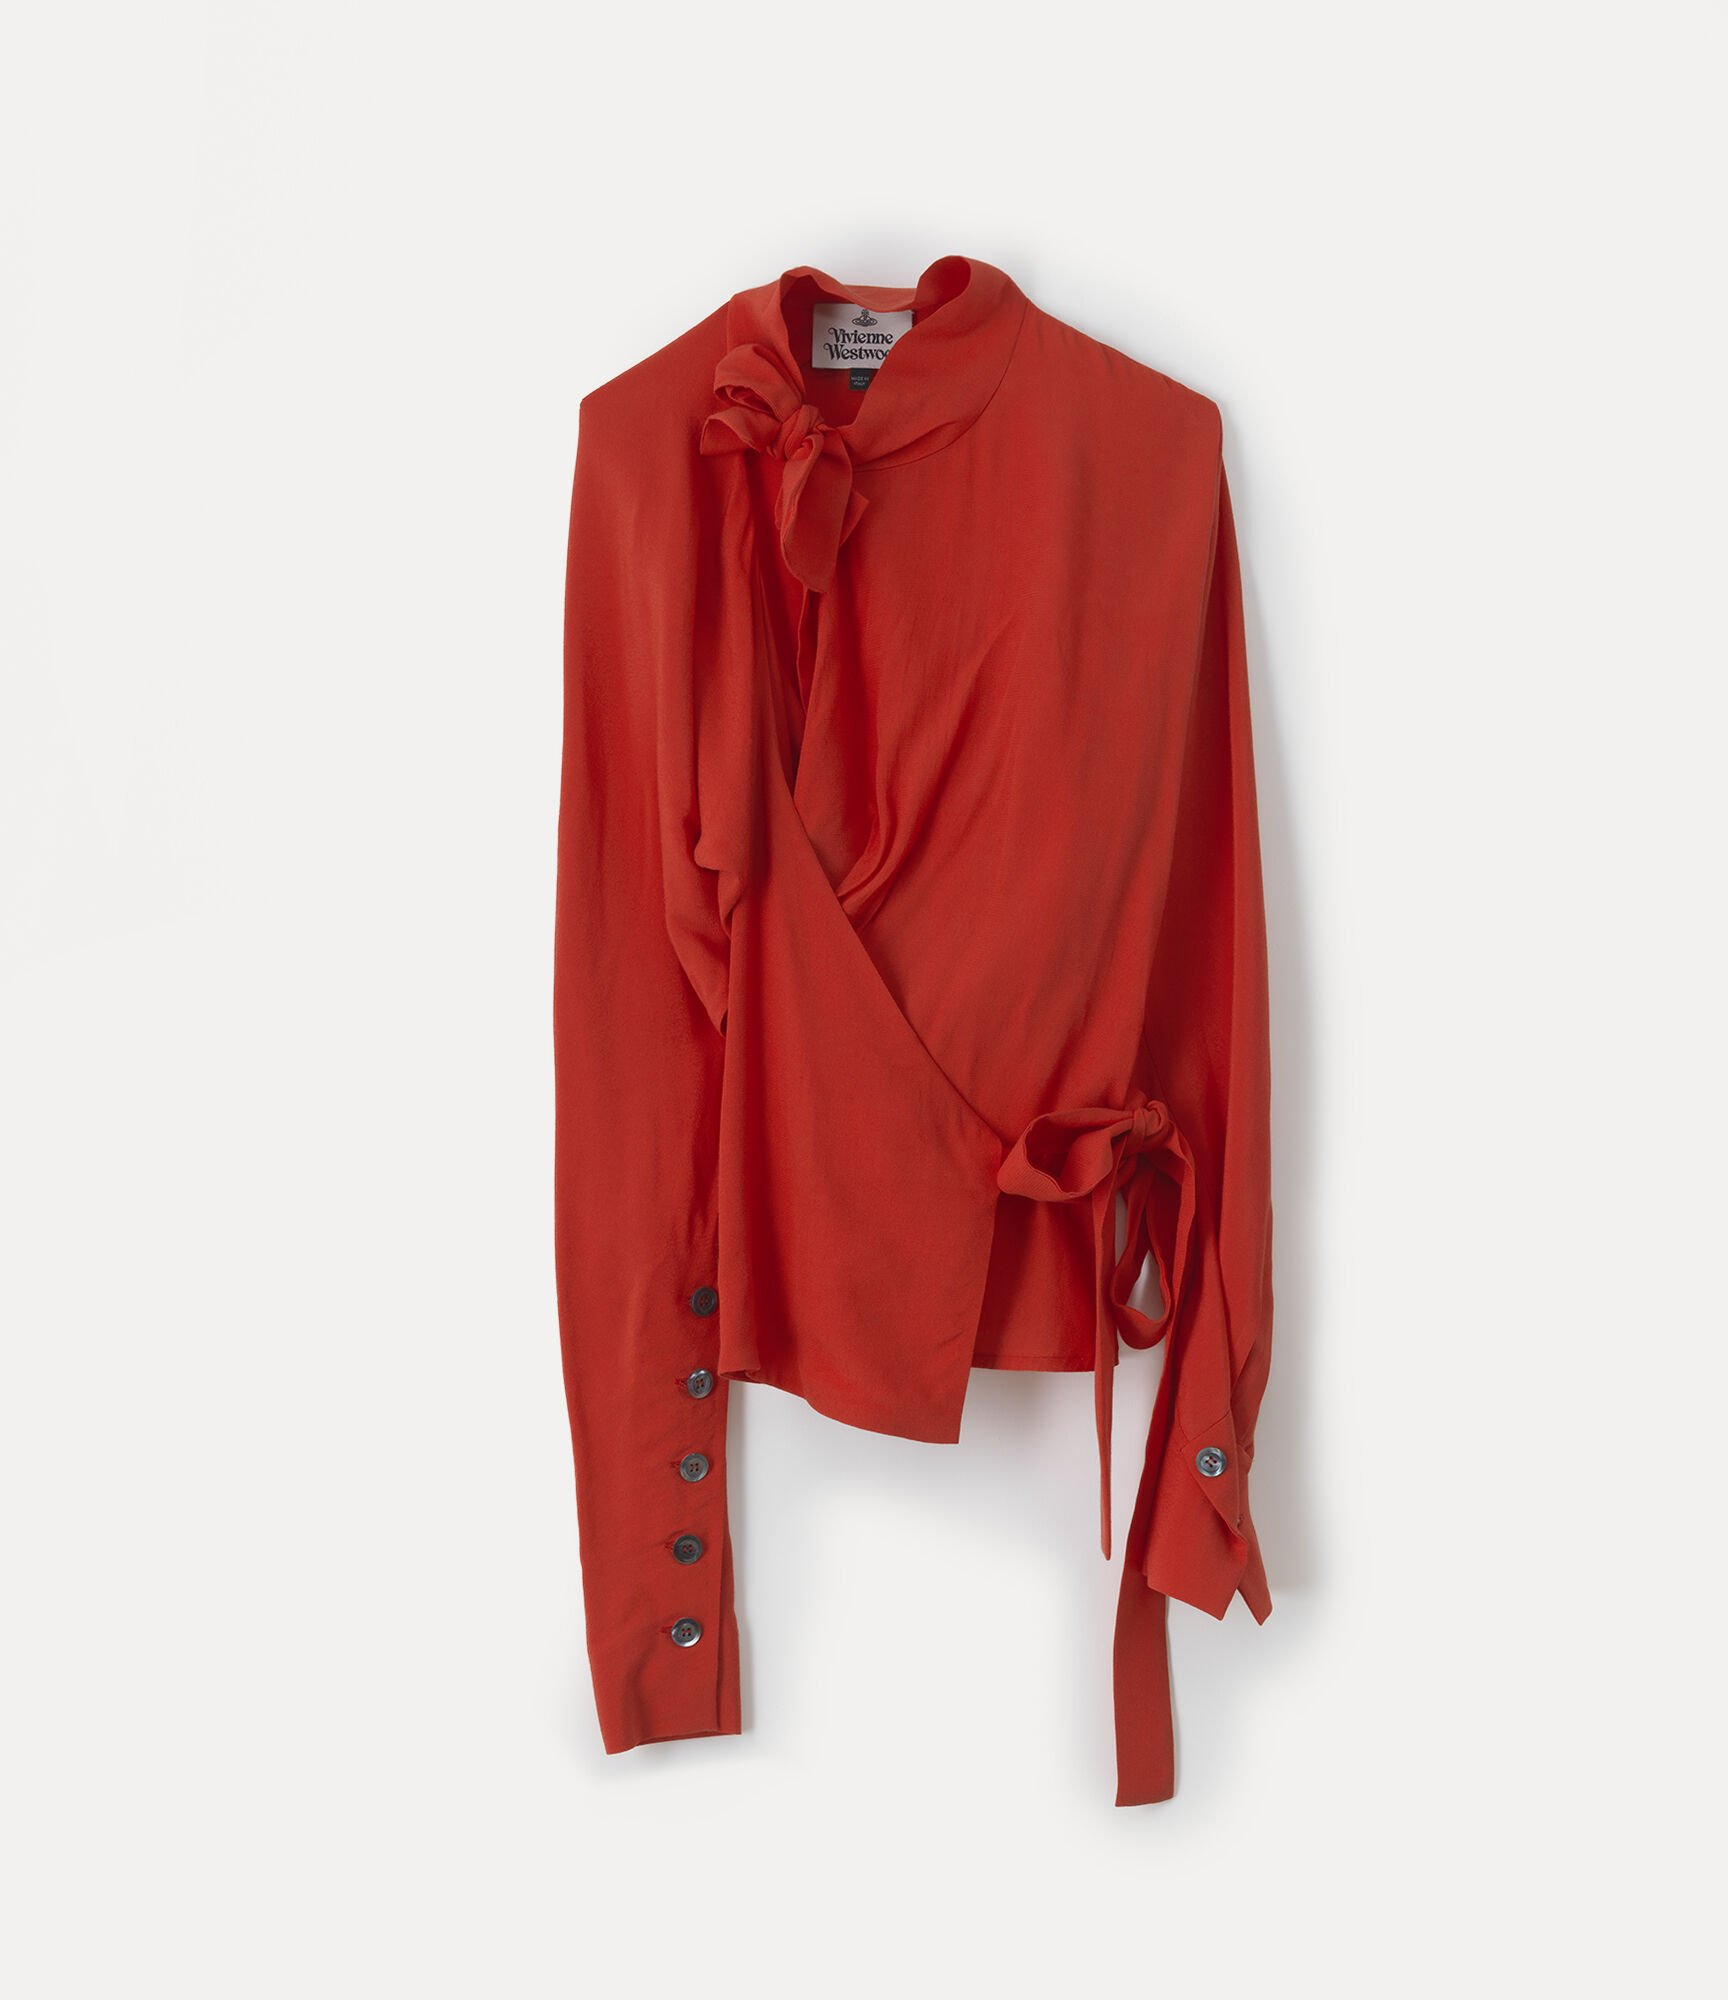 Vivienne Westwood Mirror Top Red